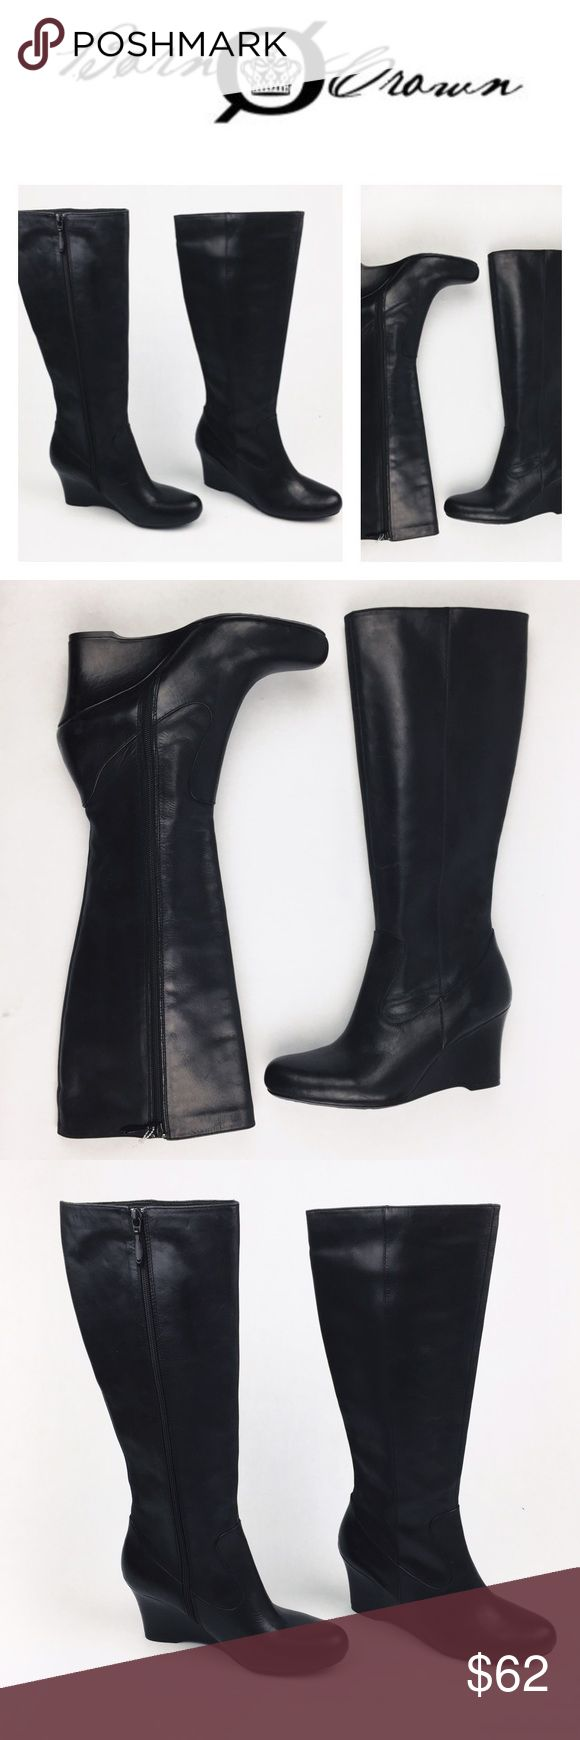 BORN CROWN BLACK ZIP UP LEATHER BOOTS SZ9.5 Hot hot hot! BORN CROWN leather zip up black boots in Sz 9.5. Super sexy to wear with everything! Brand new never worn! Come without box, so might have some handling signs. Love them? Make an offer! Questions? Ask me 😉 Born Shoes Over the Knee Boots